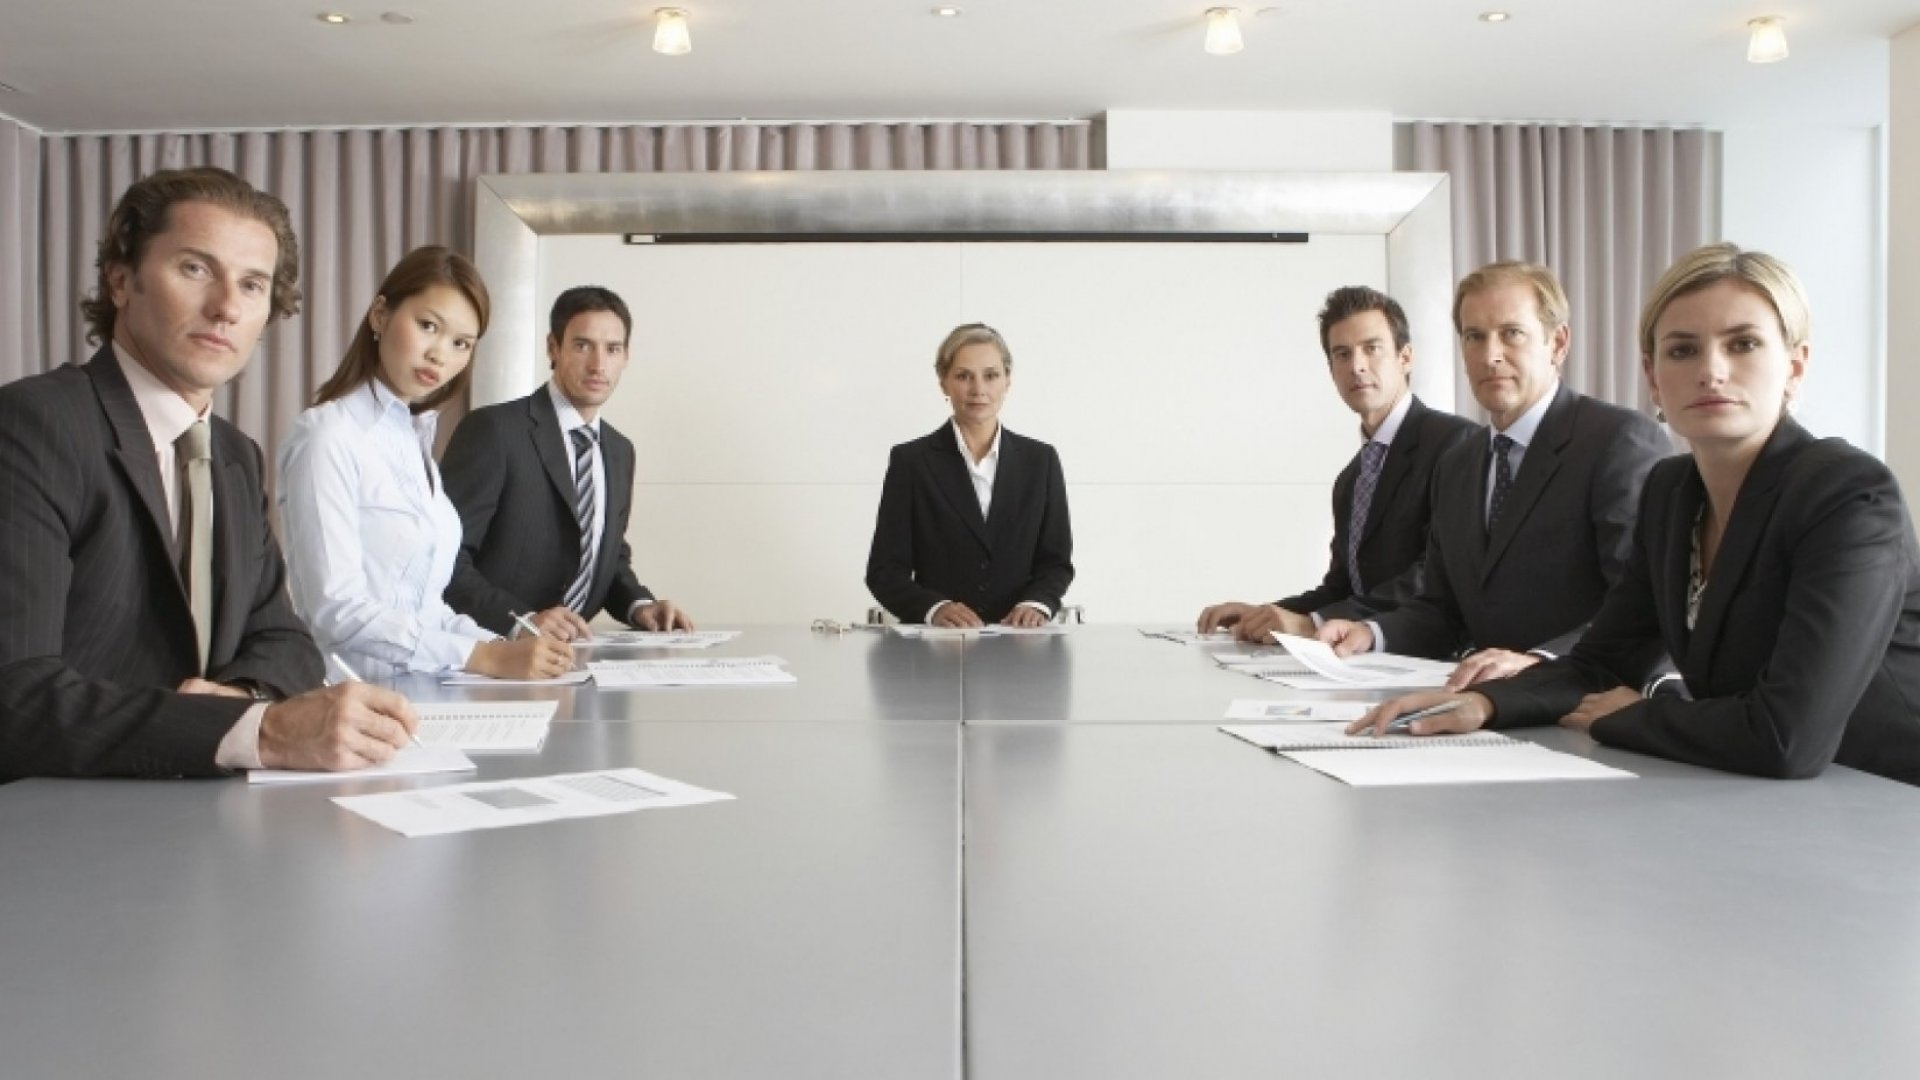 10 Tips for Running a Successful Board Meeting